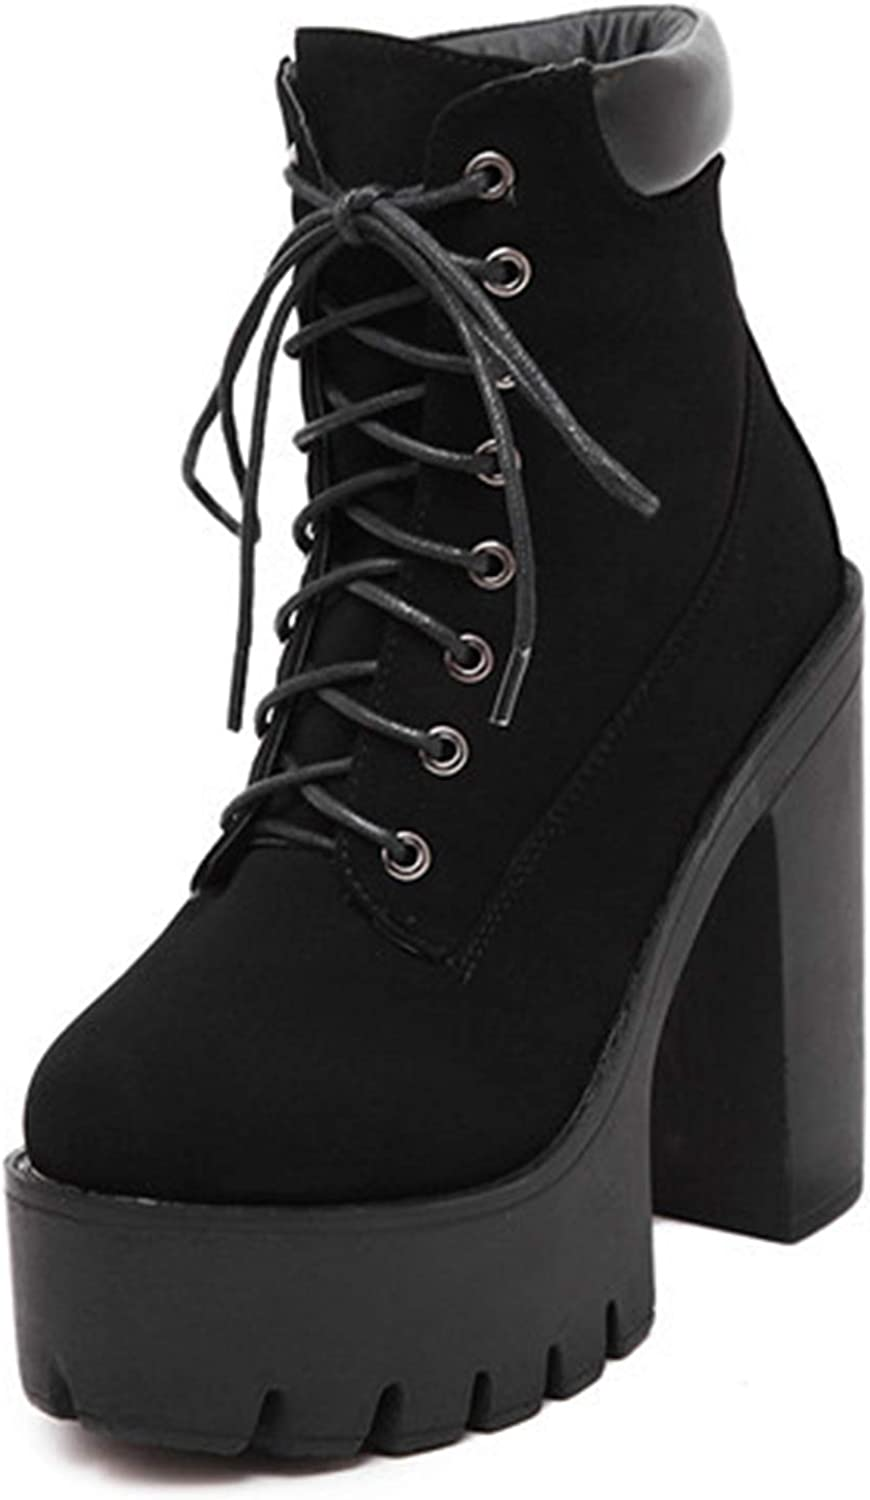 Ankle Boots Women Lace Up Thick Heel Platform Boots Ladies Worker Boots Black 42